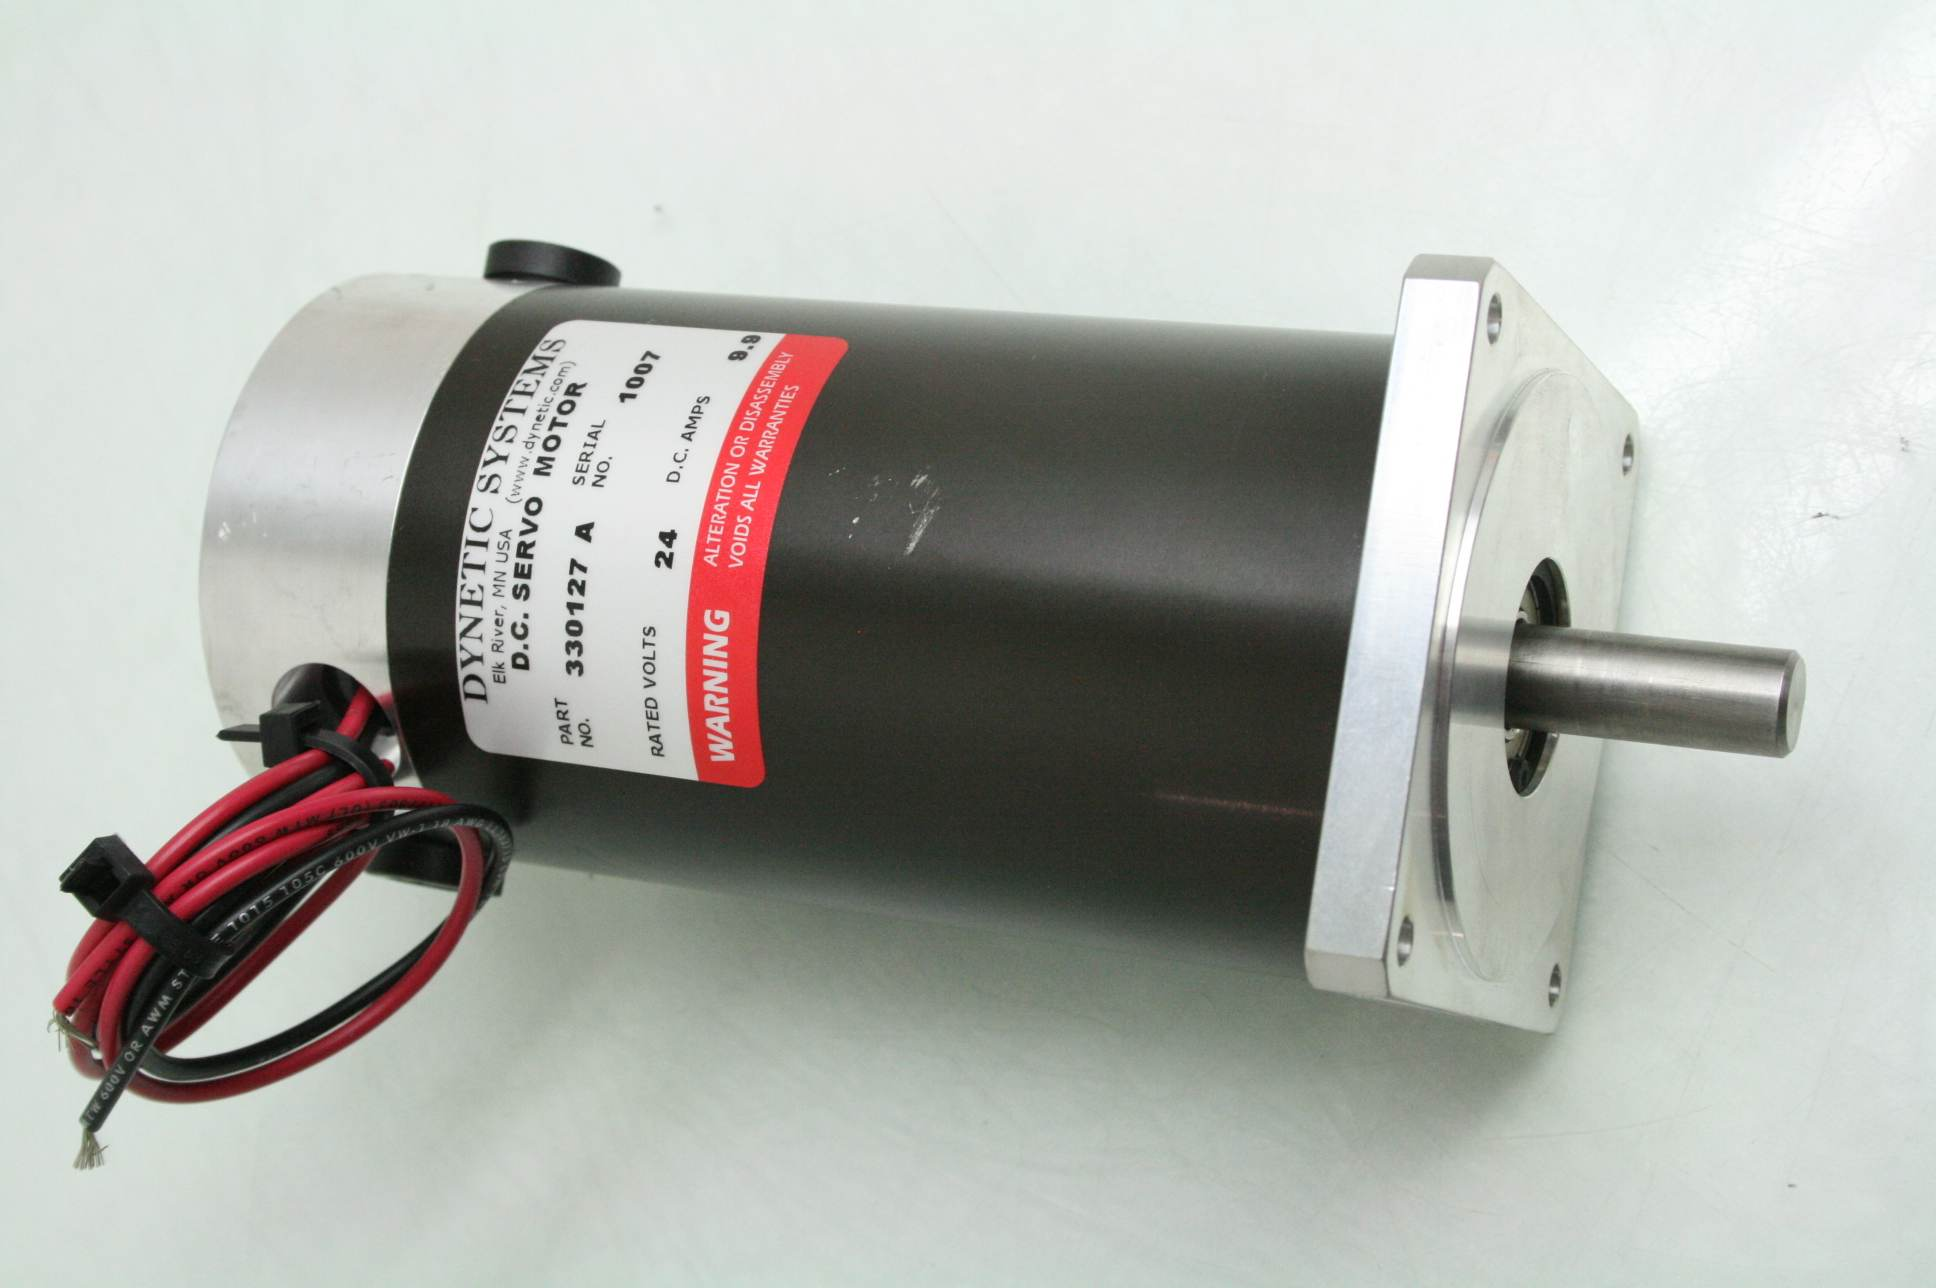 Dynetic systems 330127 dc brushed nema 34 servo motor 24v for 24 volt servo motor